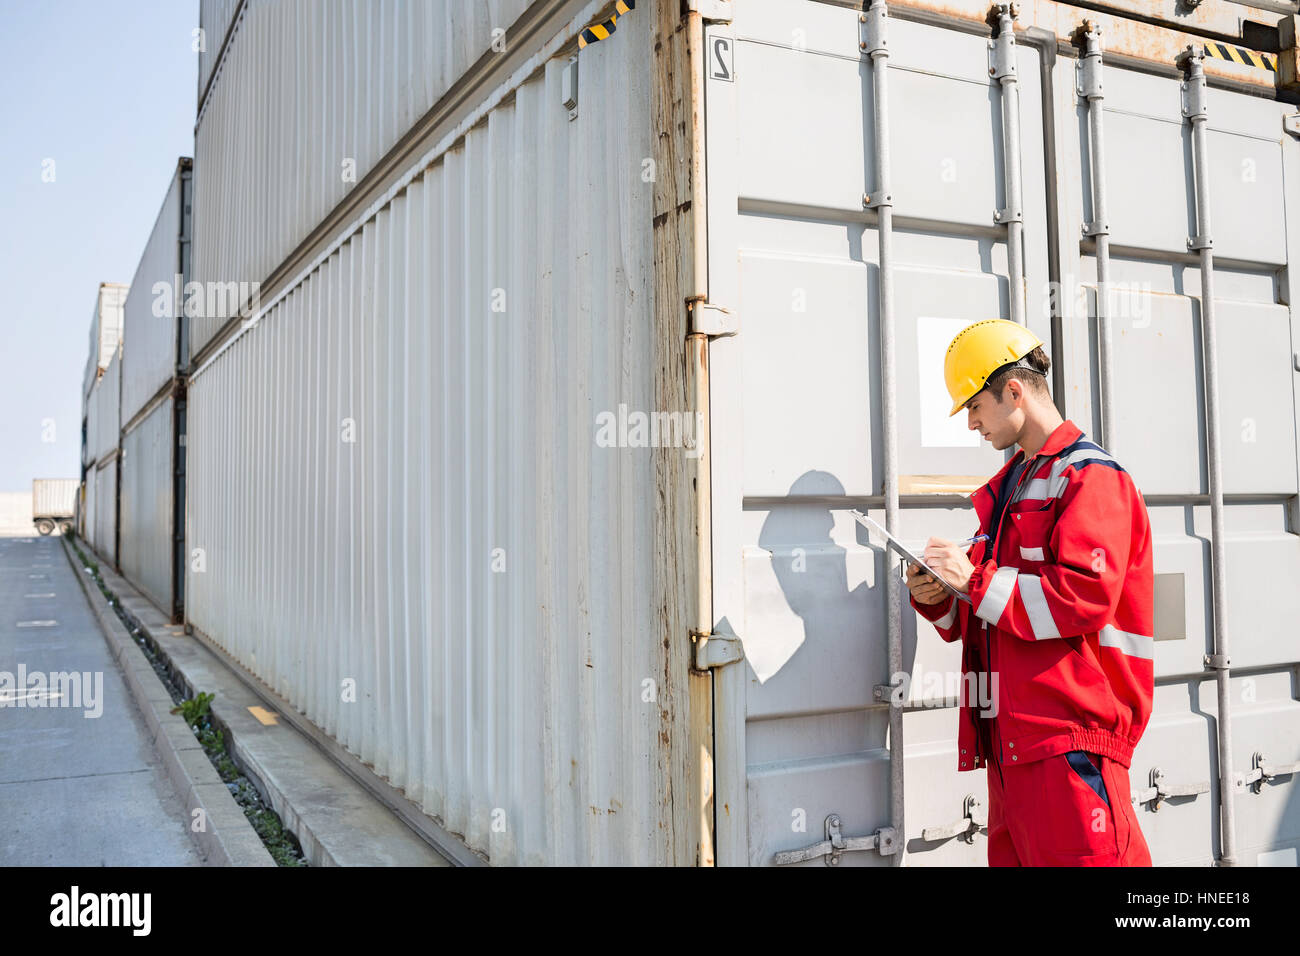 Male worker inspecting cargo container while writing on clipboard in shipping yard - Stock Image